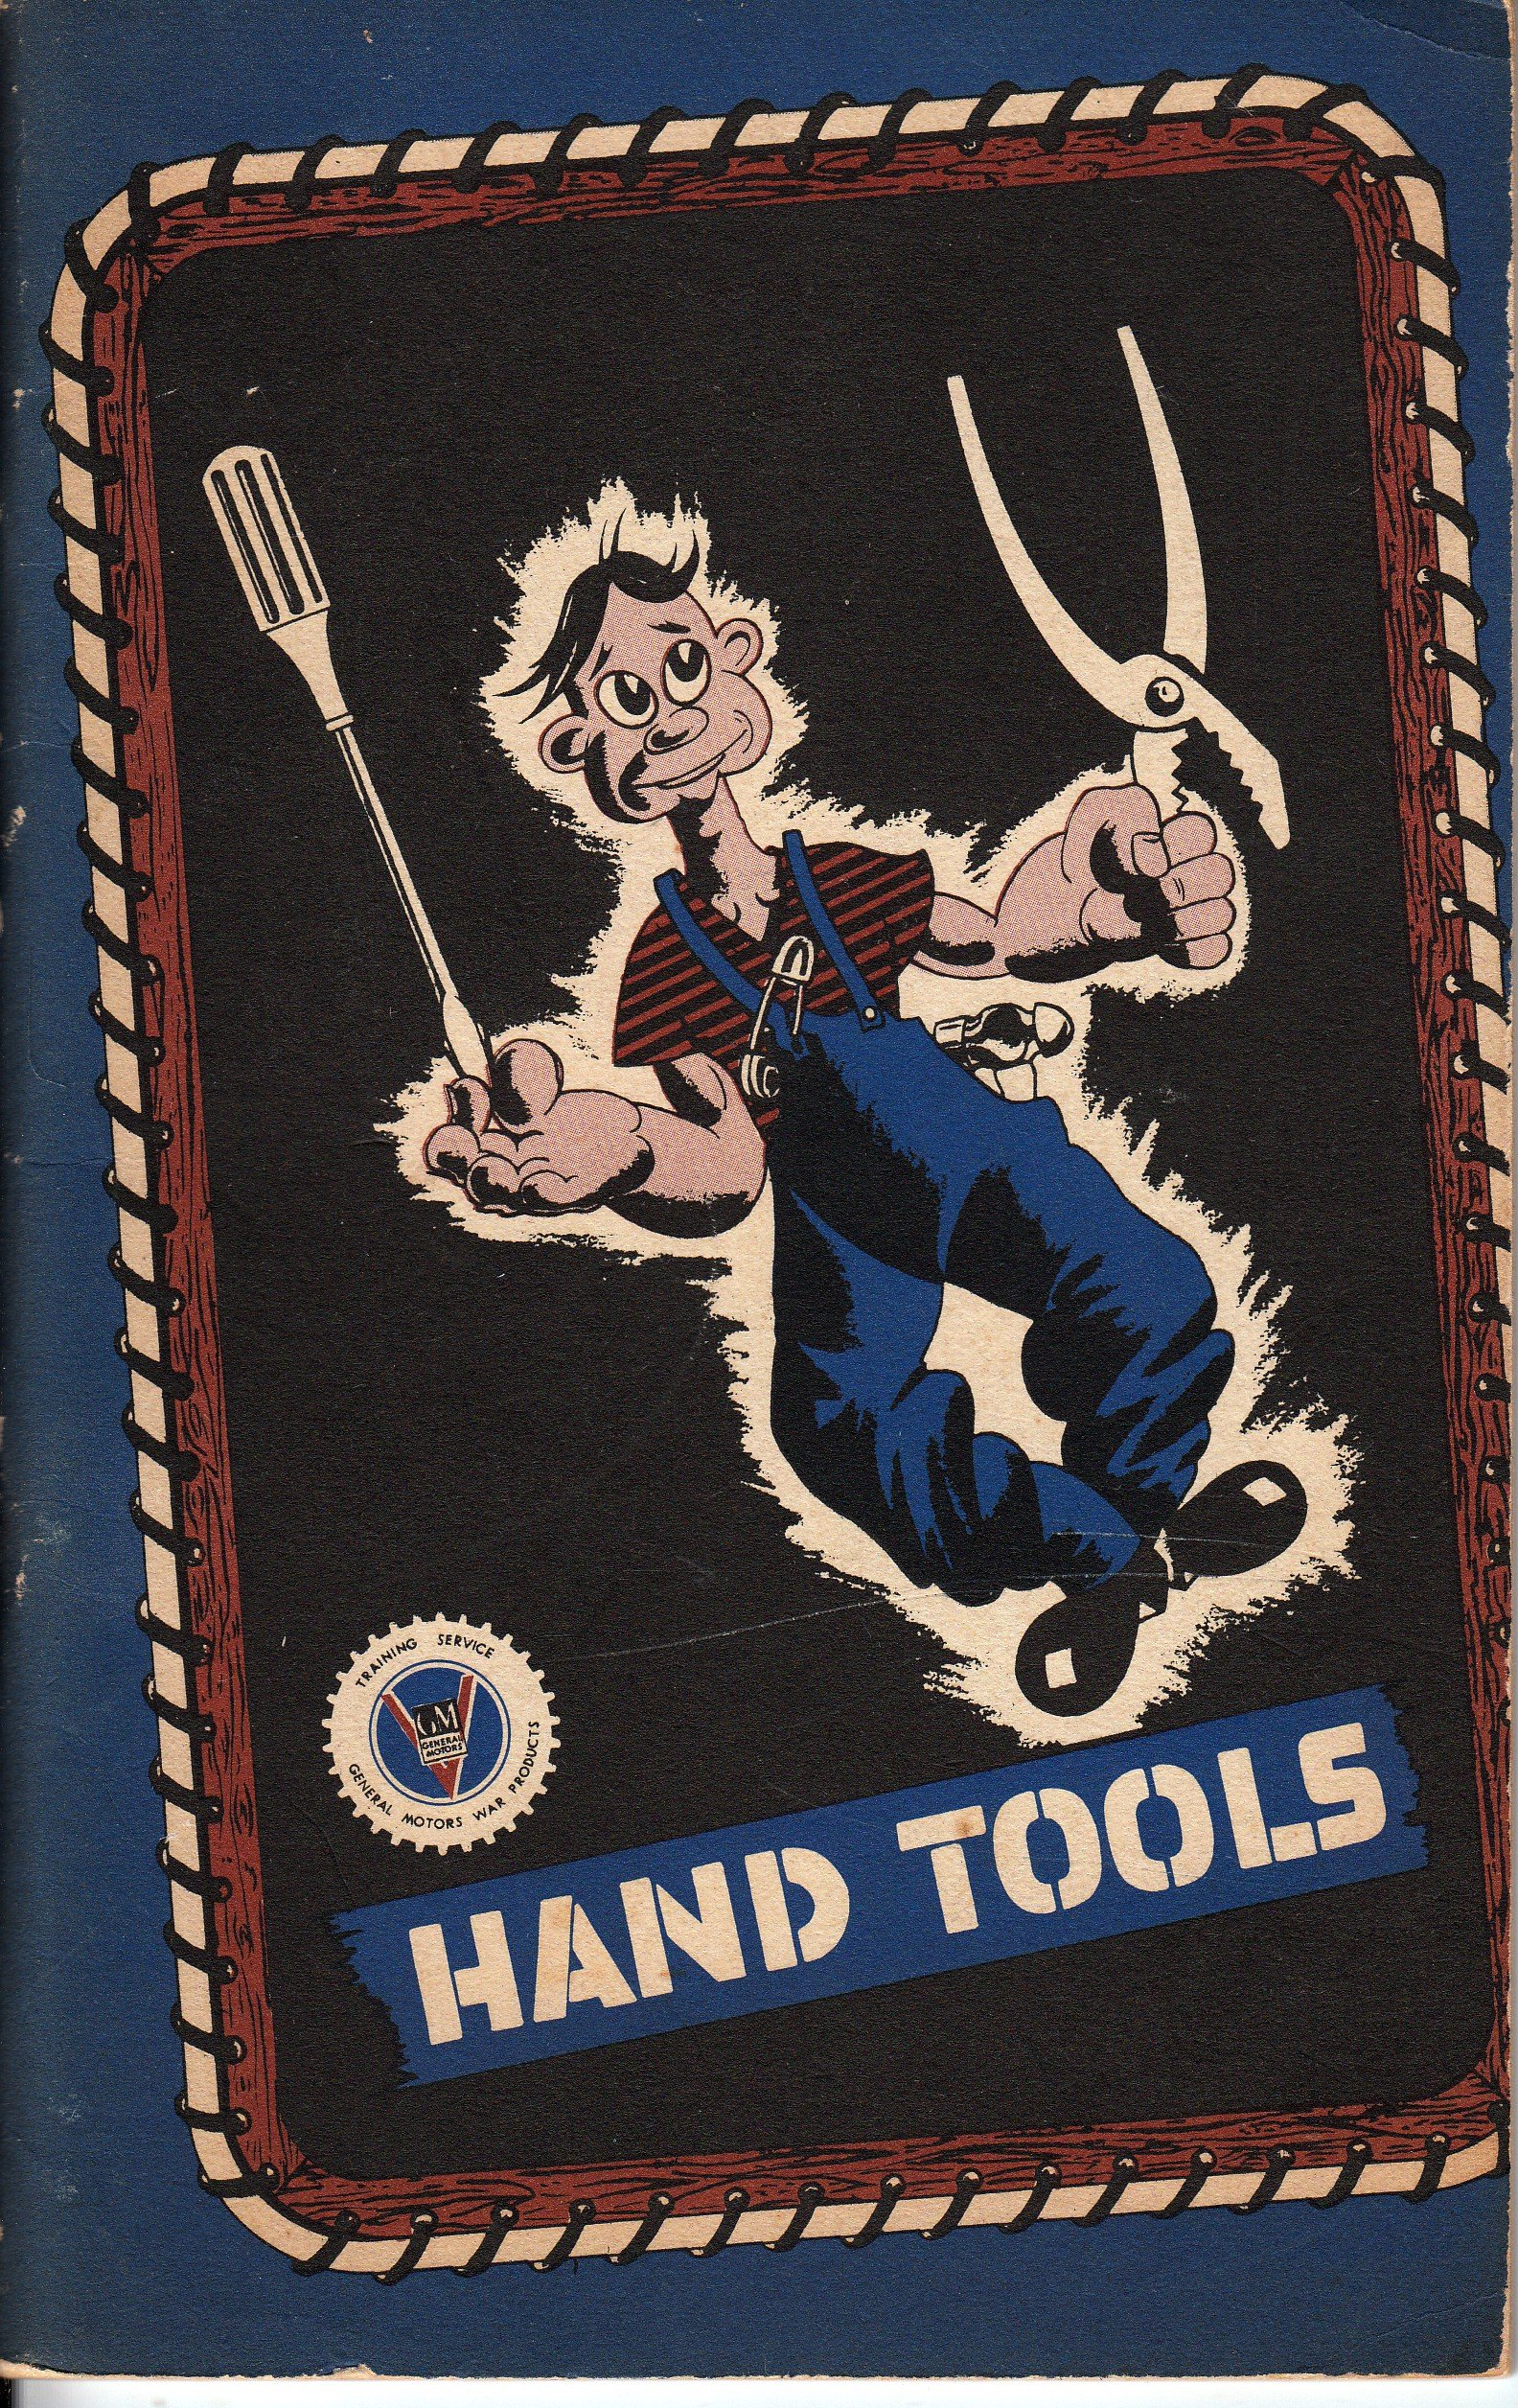 Hand Tools: their correct usage and care